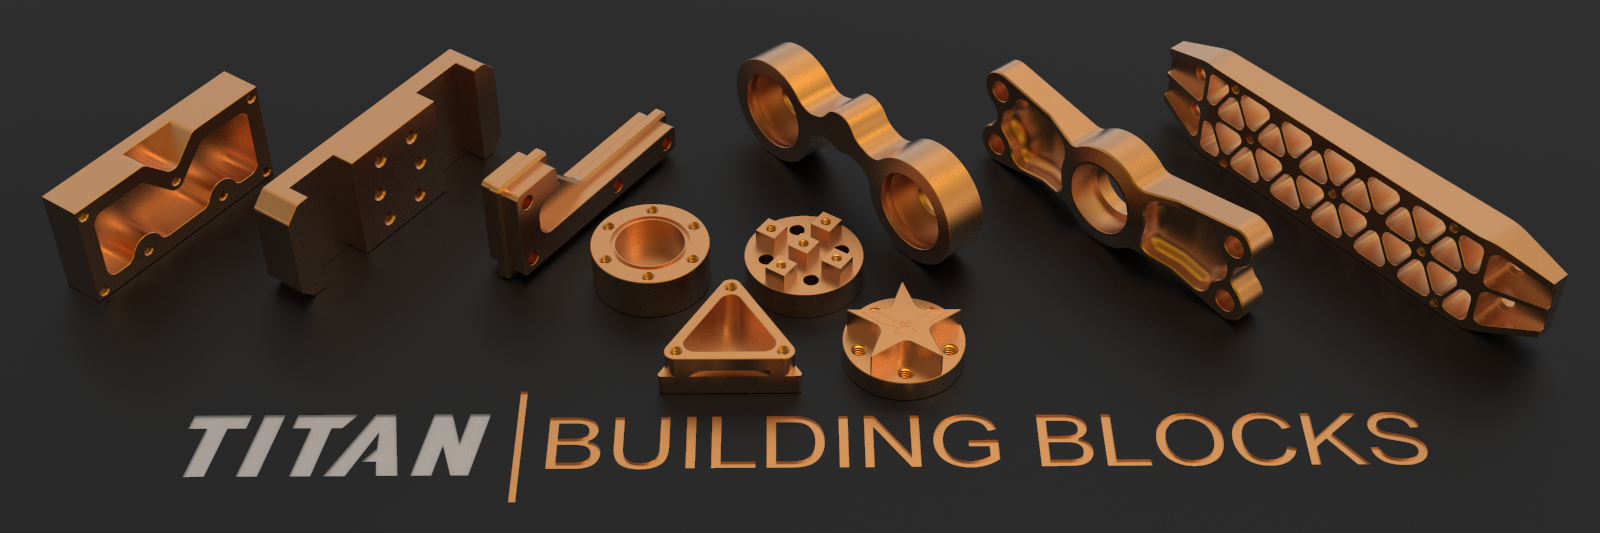 TITAN BUILDING BLOCKS Image